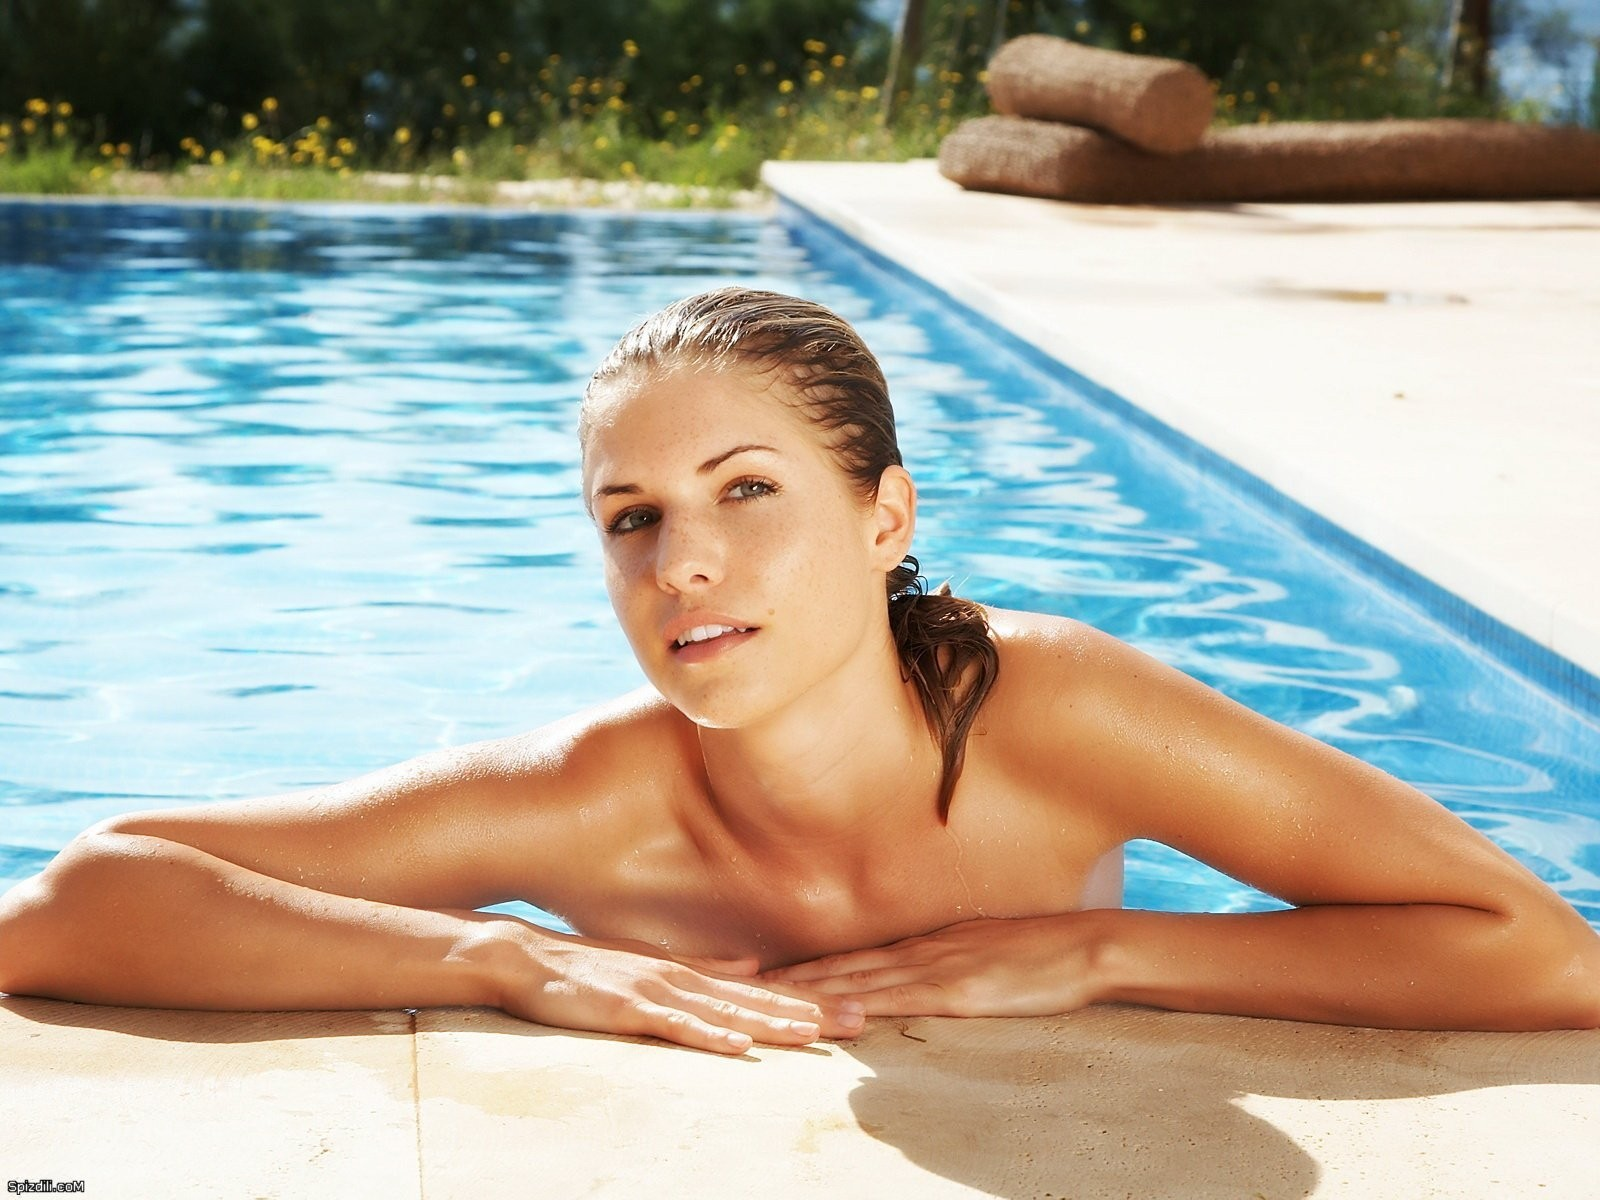 Iveta Vale swimming pools HD Wallpaper